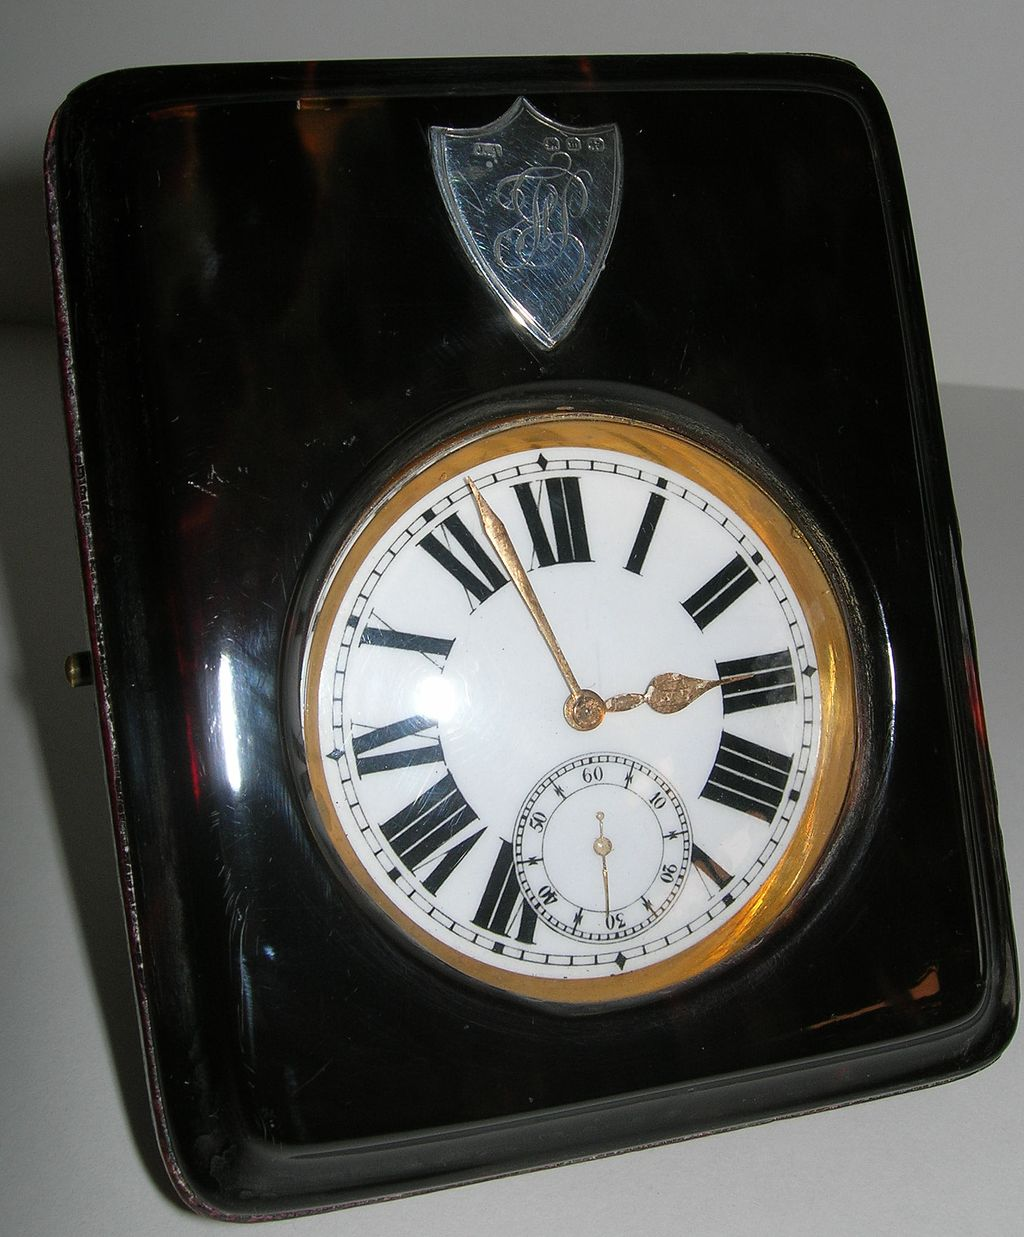 Handsome Antique Travelling Pocket Watch In Case - Tortoise Shell